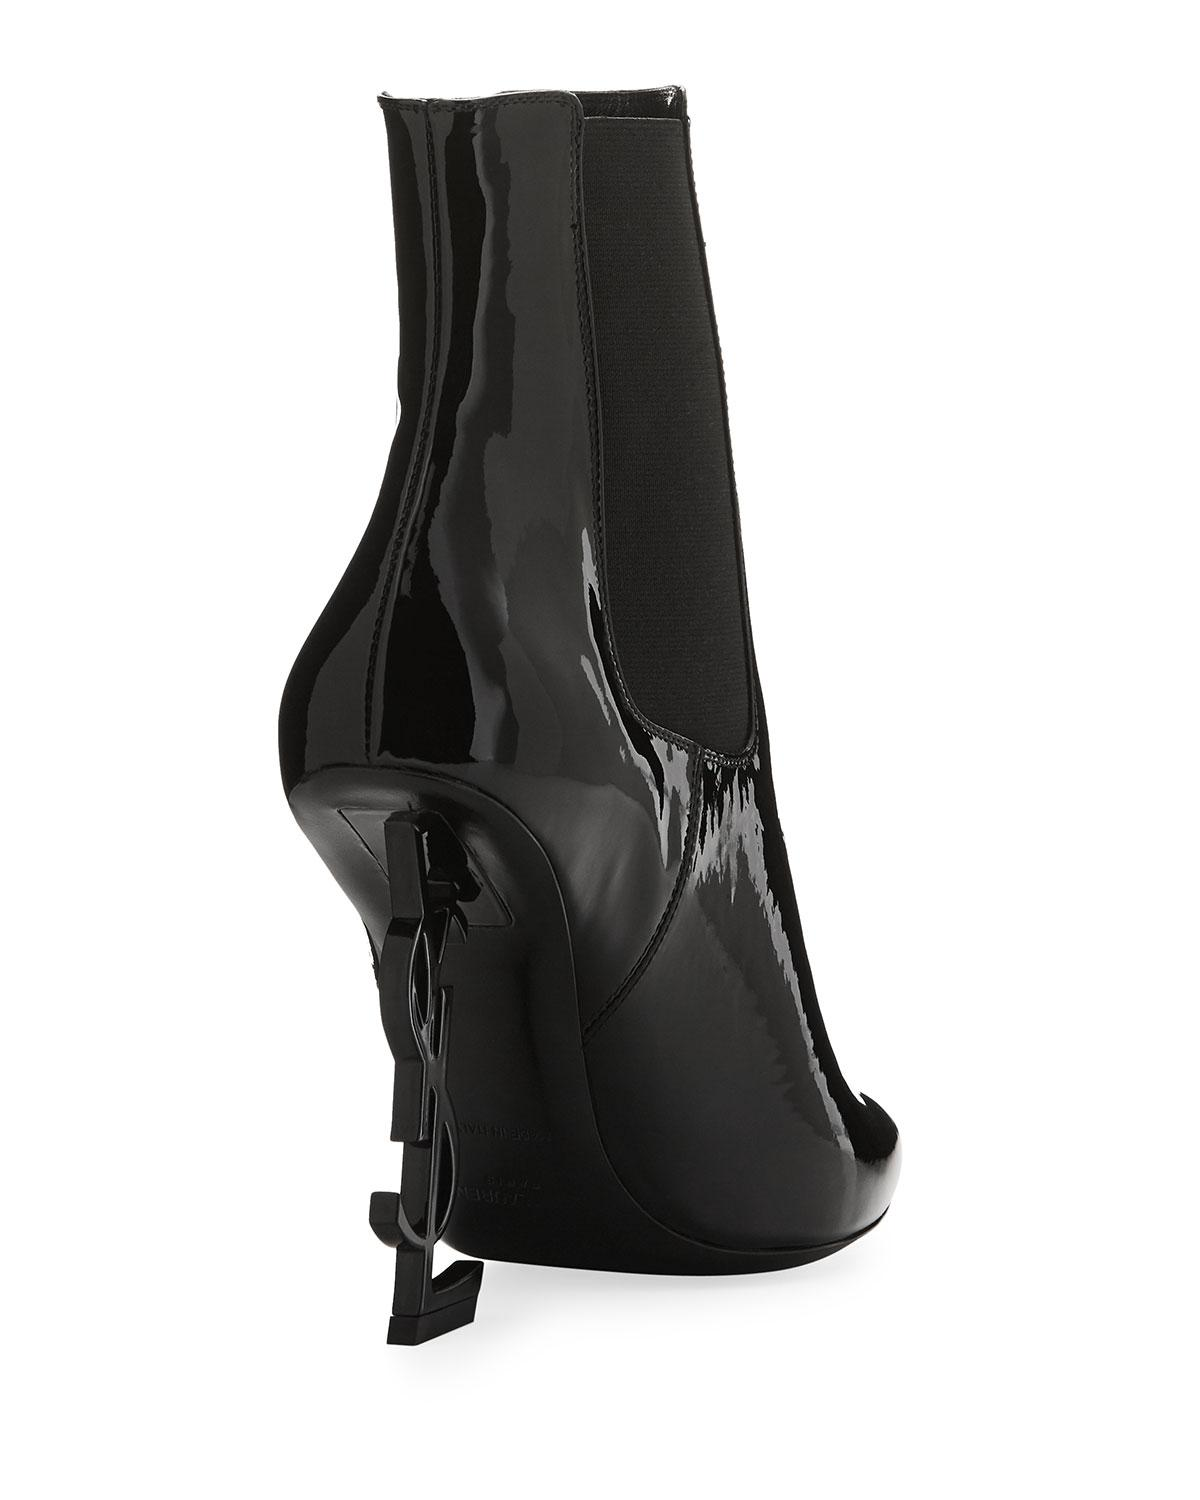 a9e7c702a1f Saint Laurent Opyum Patent Bootie With Monogram Heel in Black - Lyst